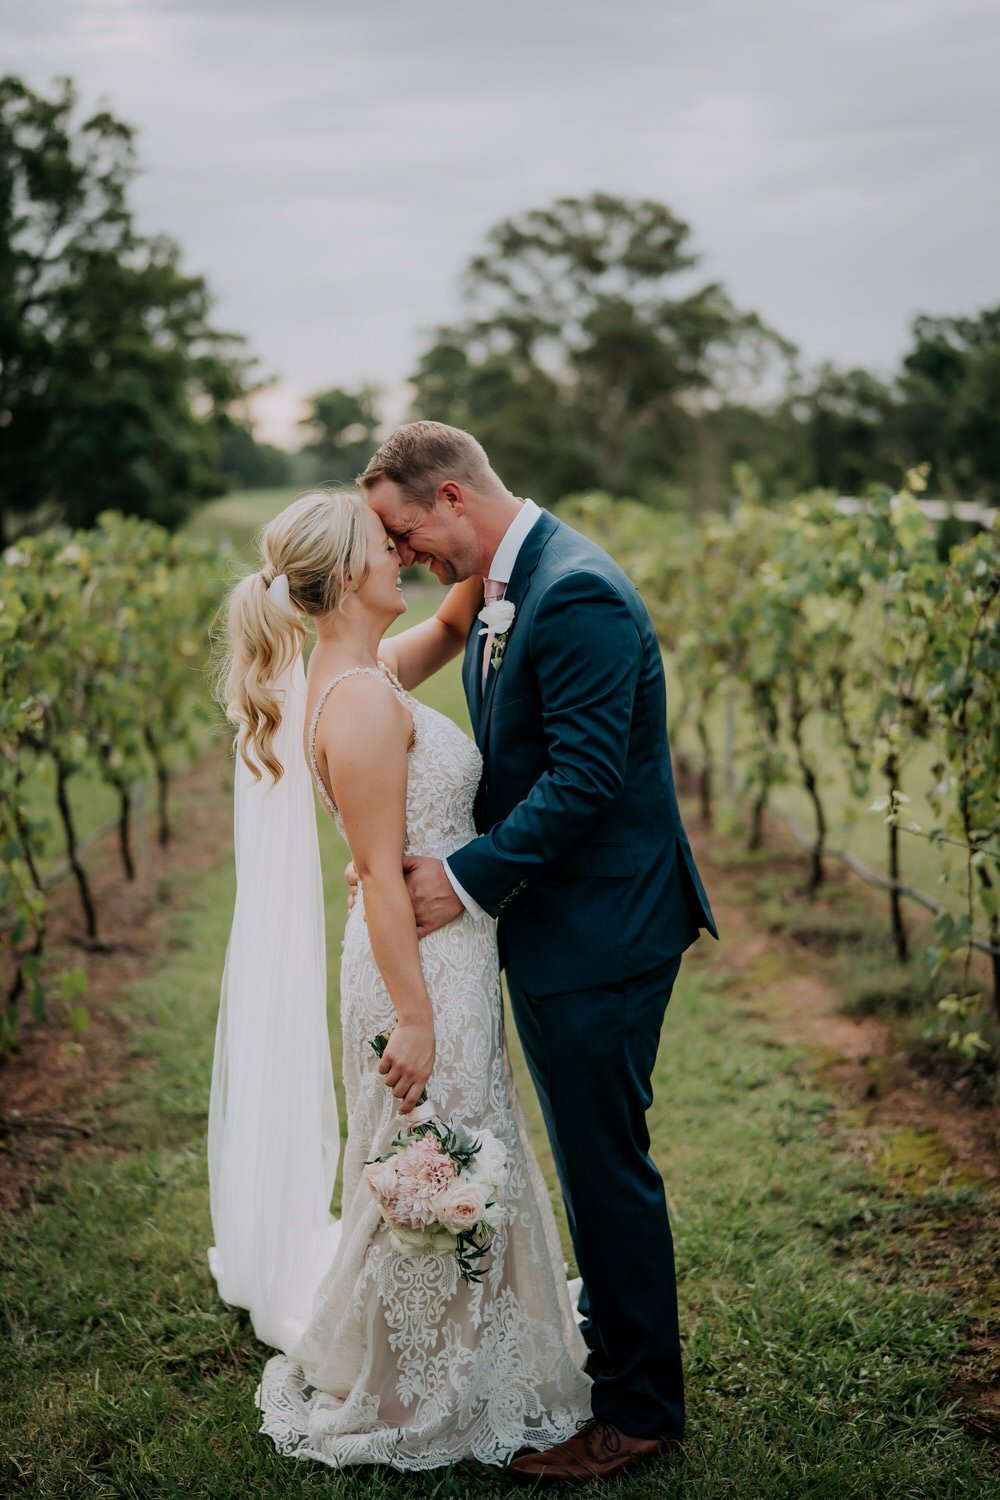 ava-me-photography-maddy-wayne-enzo-hunter-valley-ironbark-hill-vineyard-drayton-wines-wedding-5431